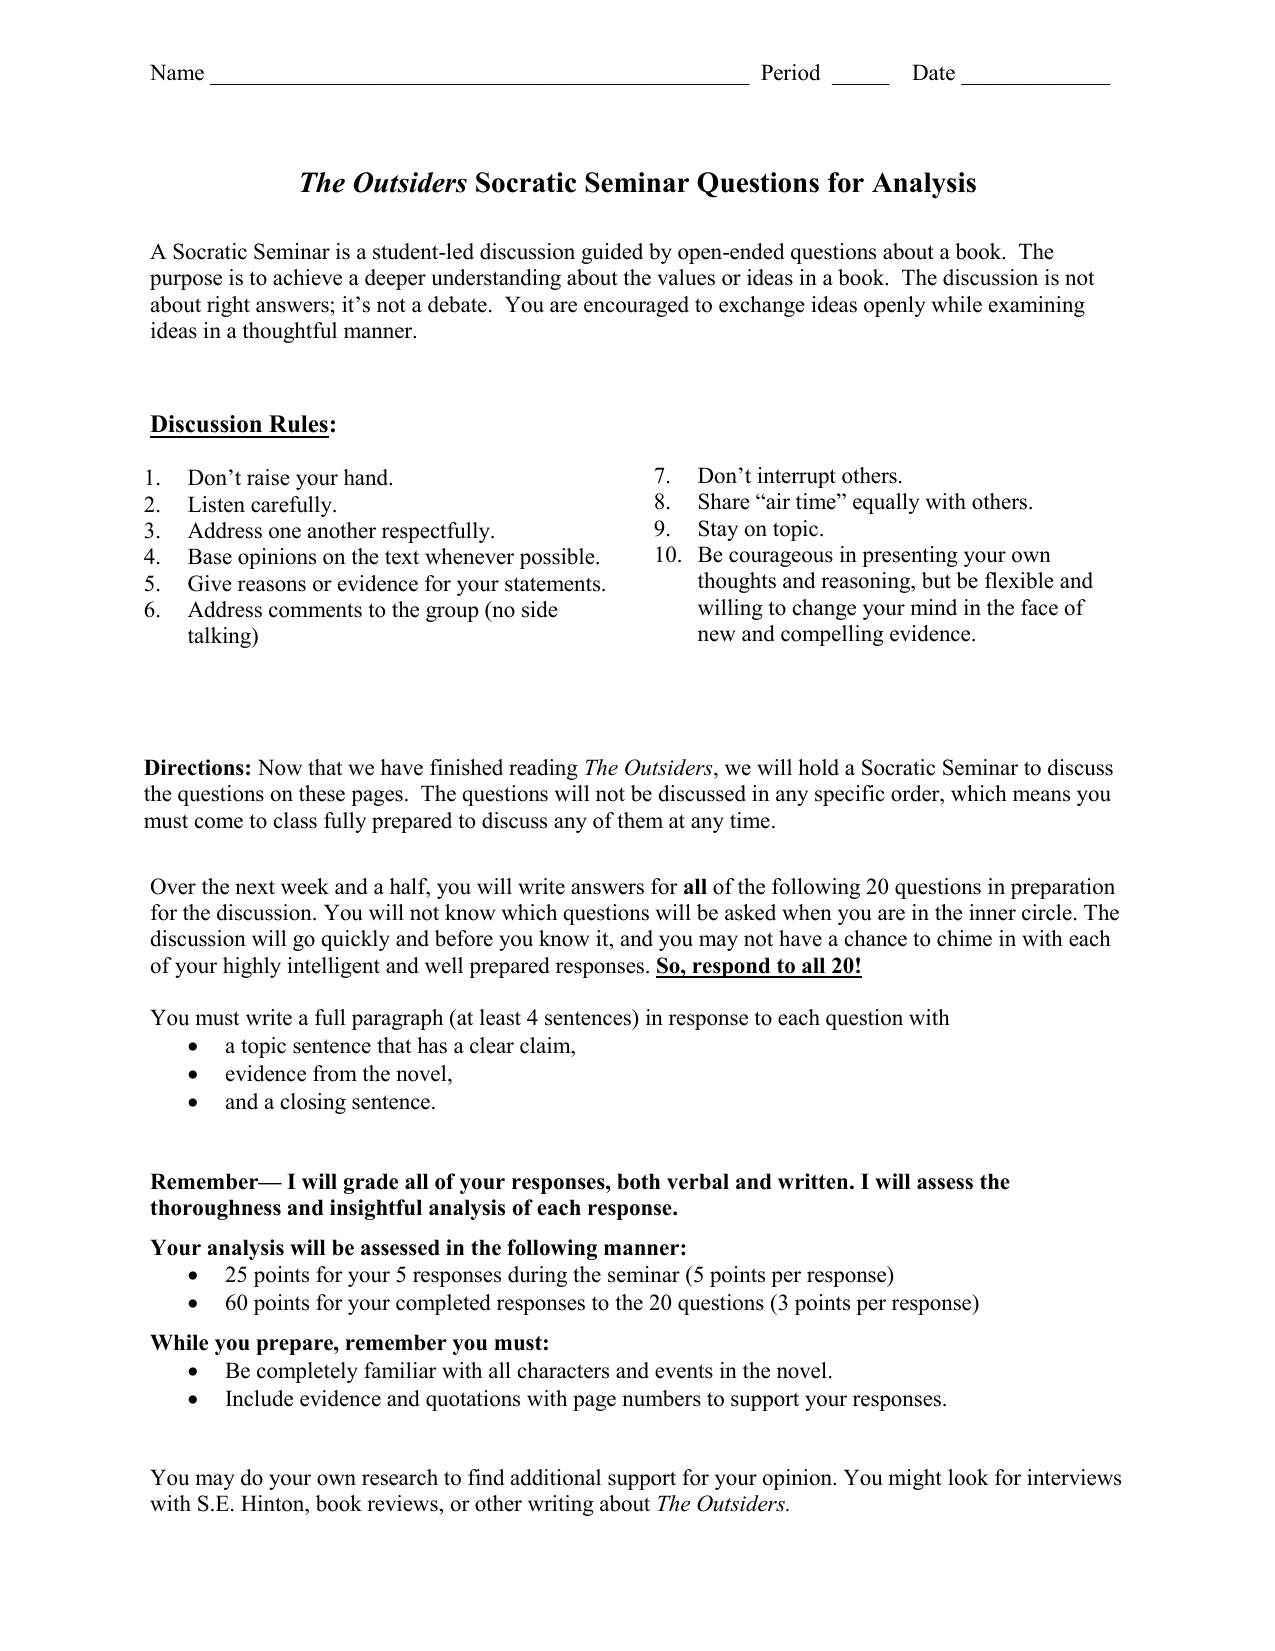 Othello Essay Thesis Eafbdafbcdccepng Sample Essay Topics For High School also High School Entrance Essay Examples Socratic Seminar The Outsiders English Essay Pmr